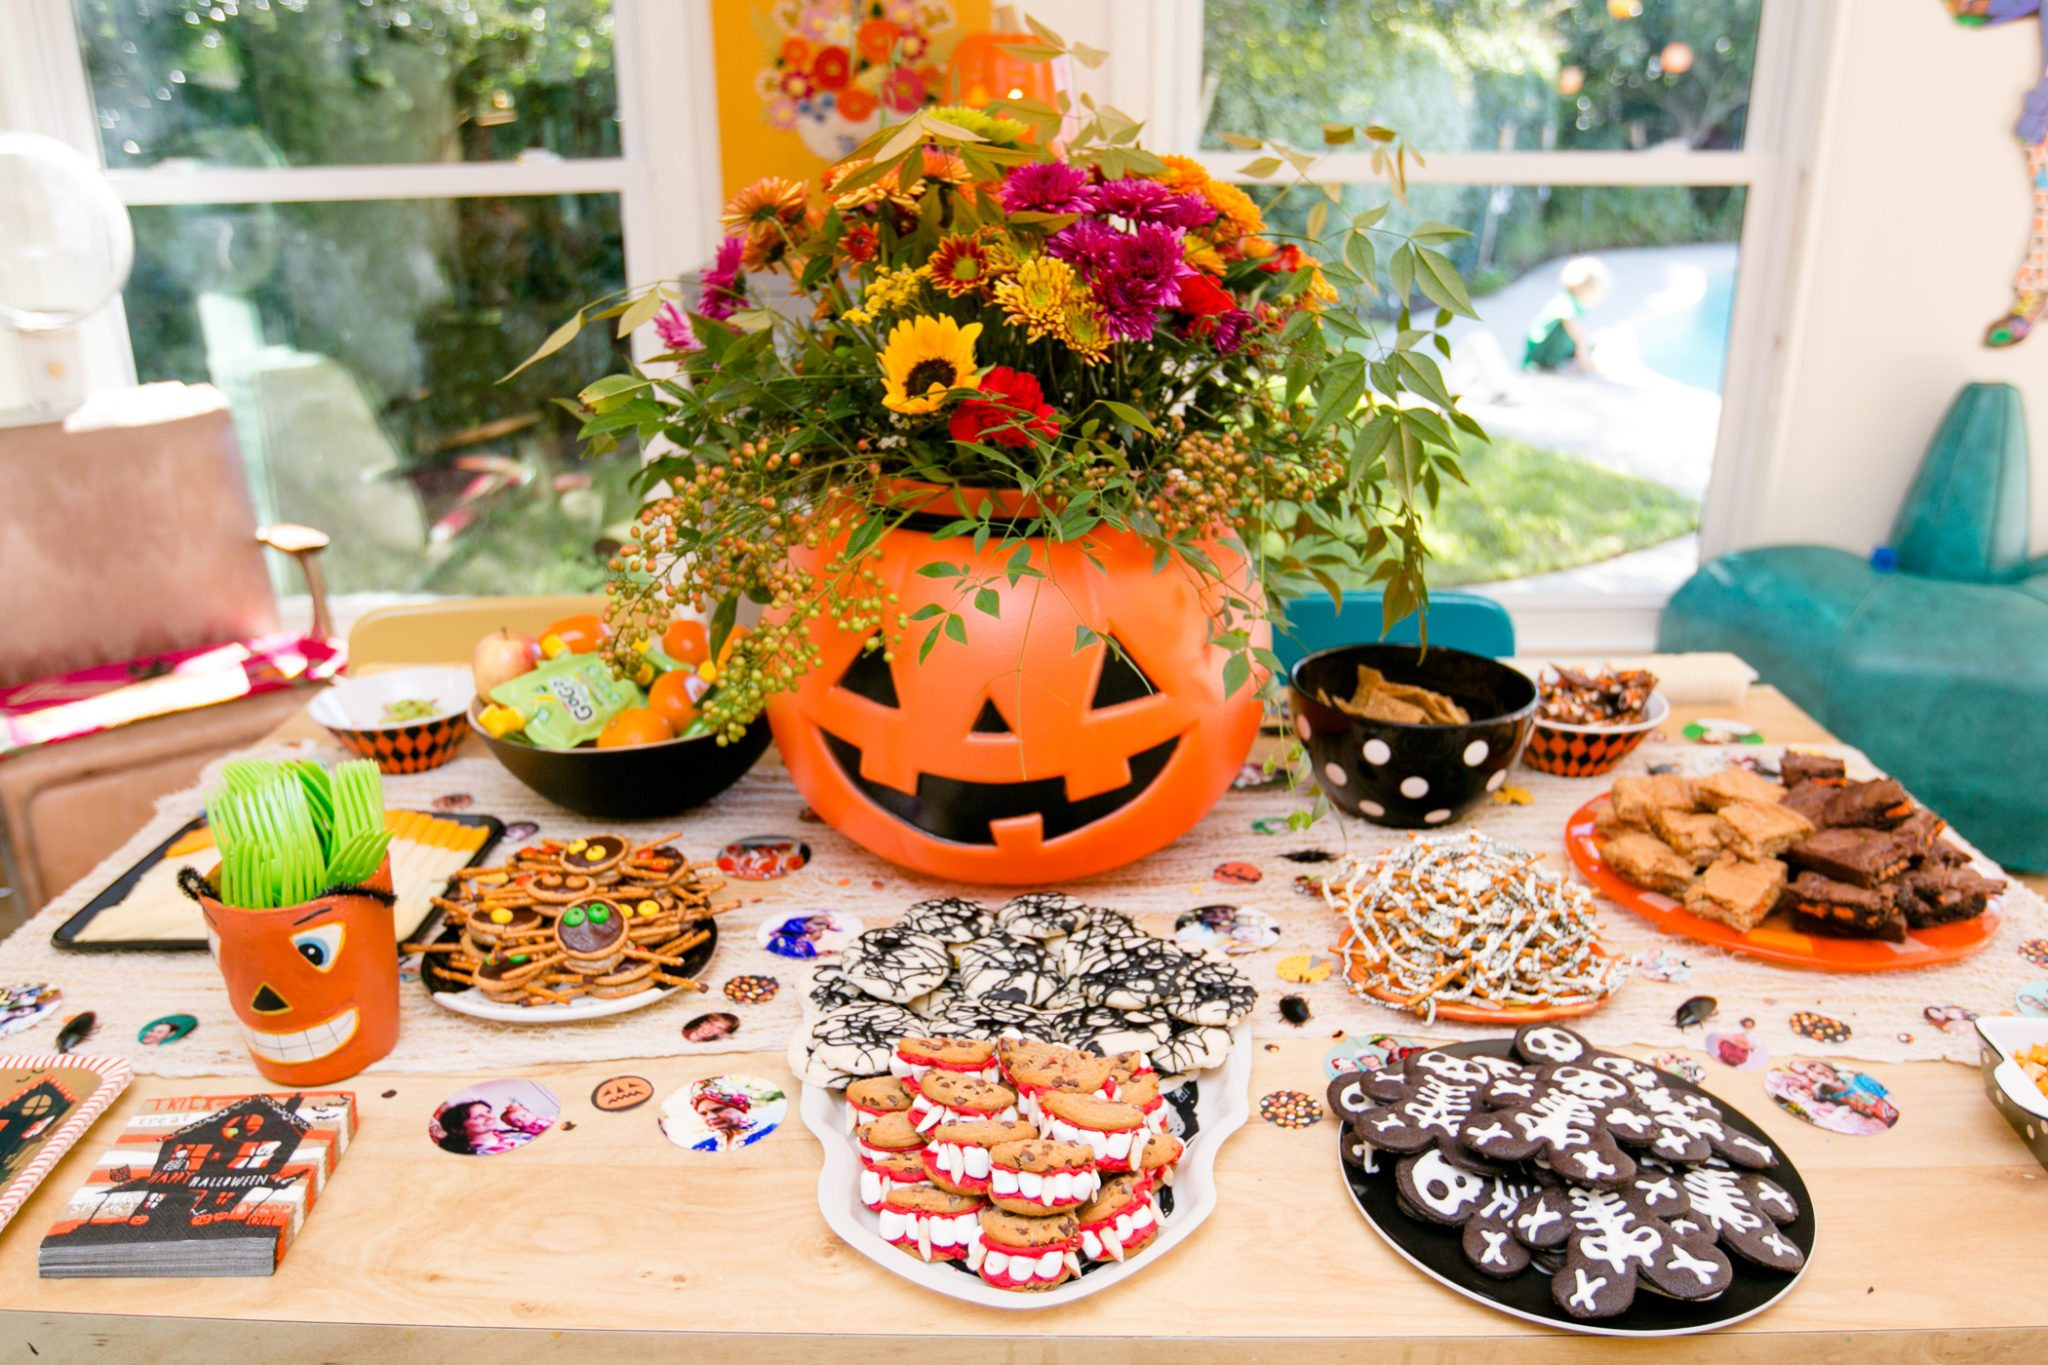 Halloween Jack-o-lantern planter and treat table